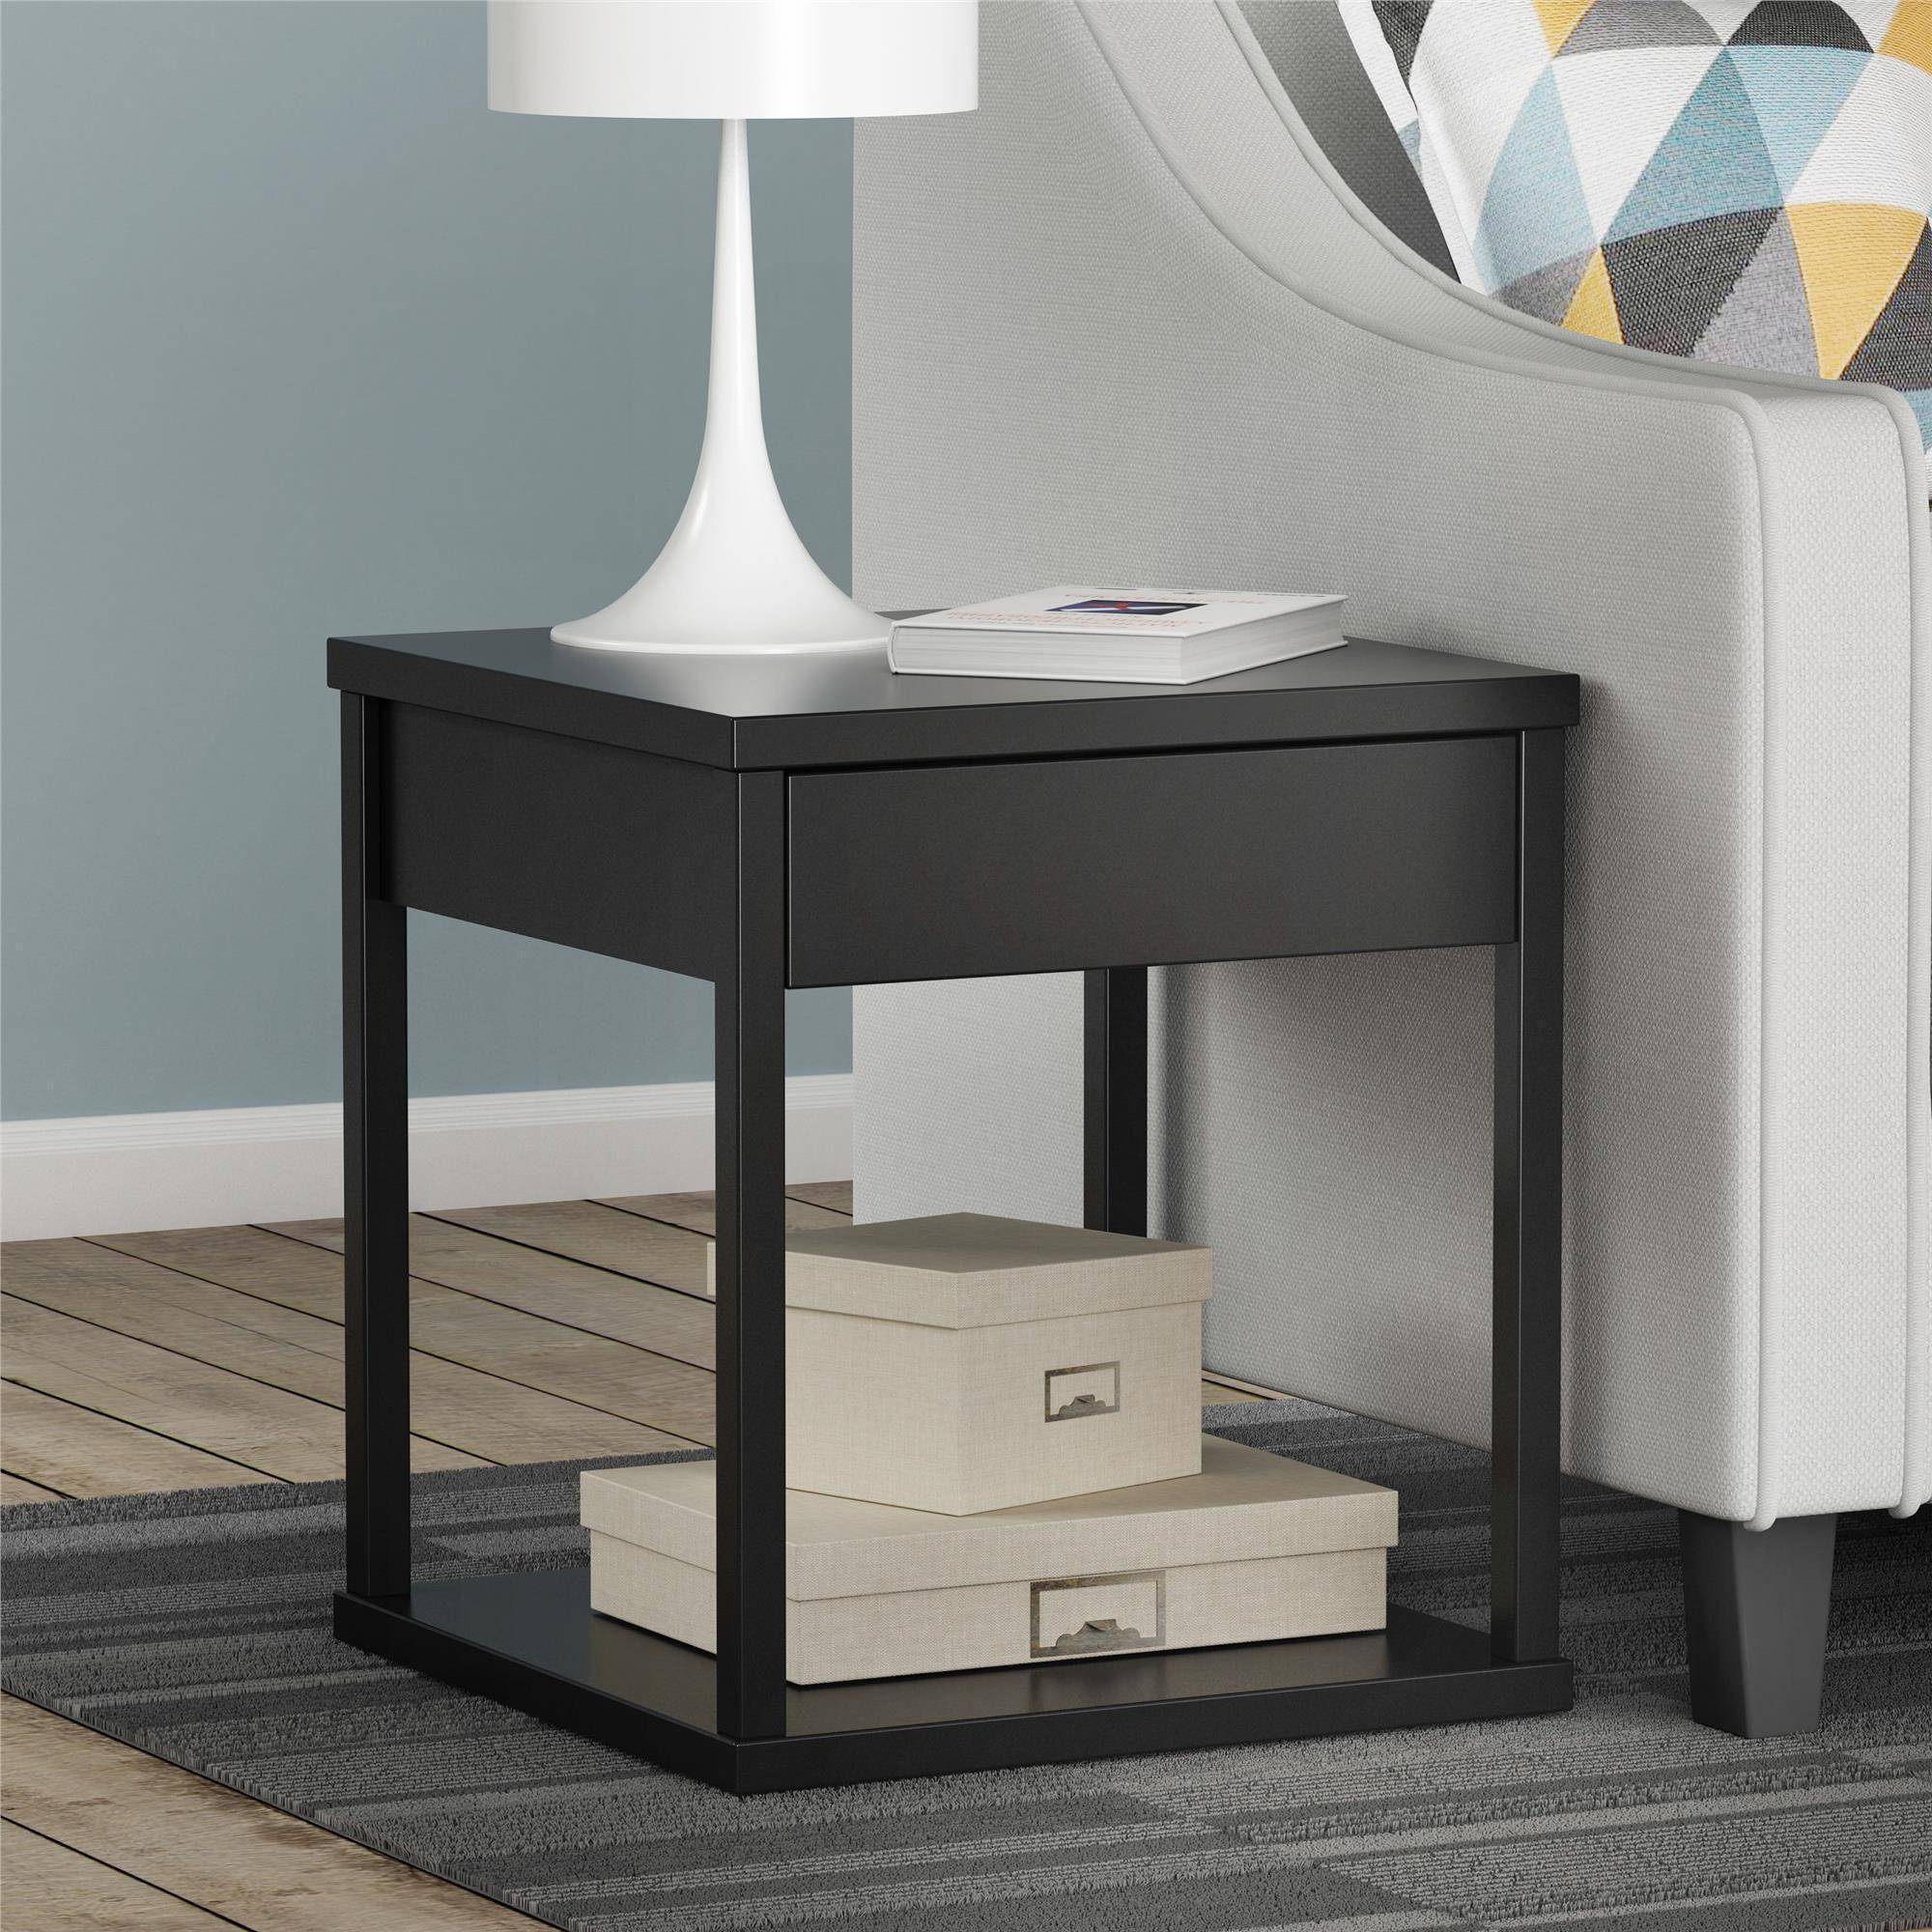 Elegant Mainstays Parsons End Table With Drawer, Multiple Colors